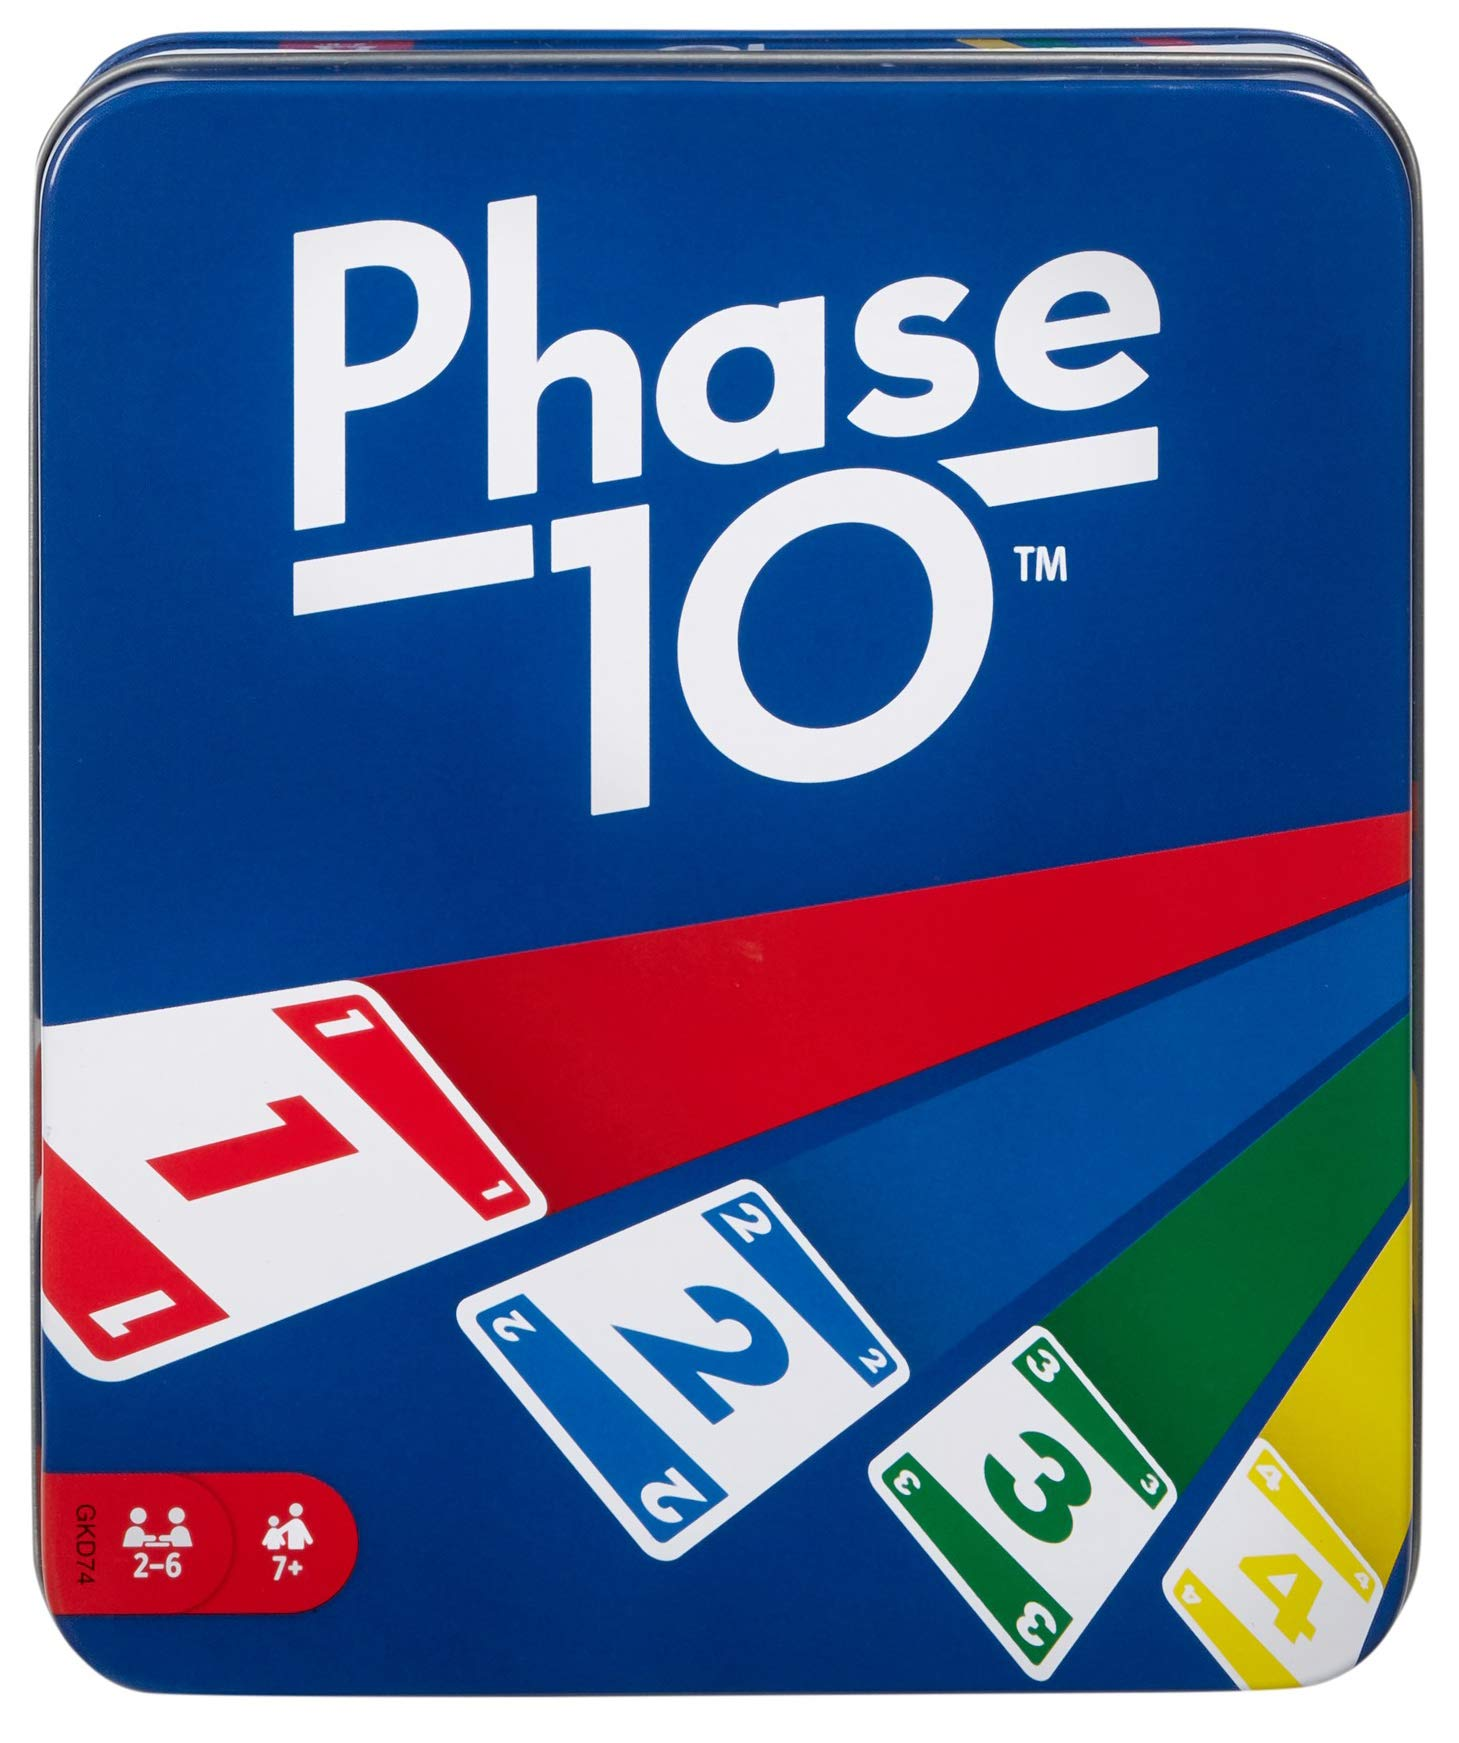 Phase 10 Card Game with 108 Cards, Makes a Great Gift for Kids, Family or Adult Game Night, Ages 7 Years and Older [Amazon Exclusive]